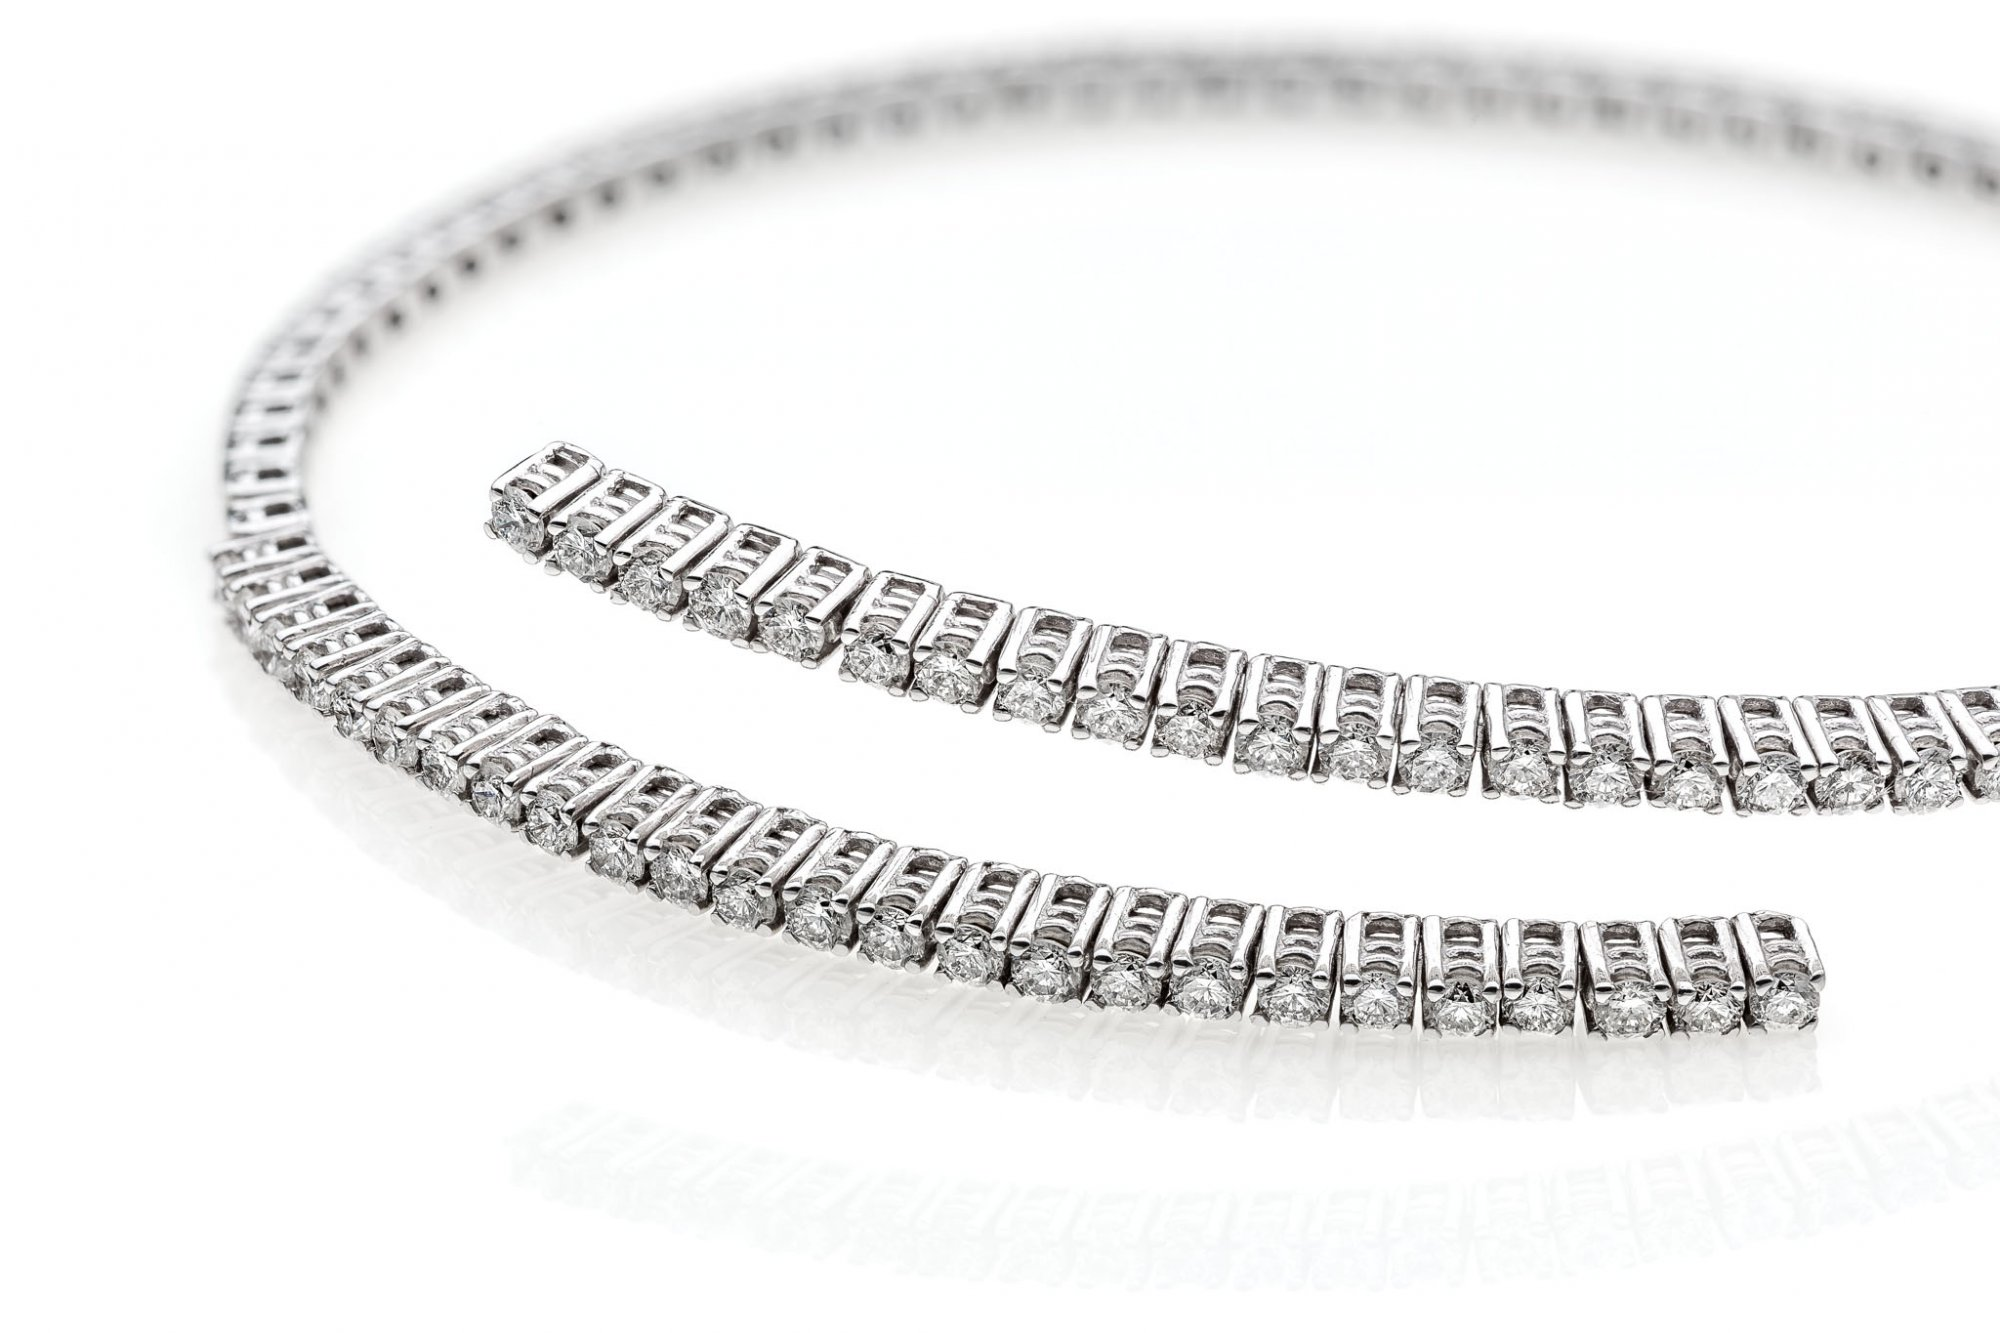 Tennis bracelet in 18 KT white gold with round brilliant cut diamonds ct.0.80 VS G color